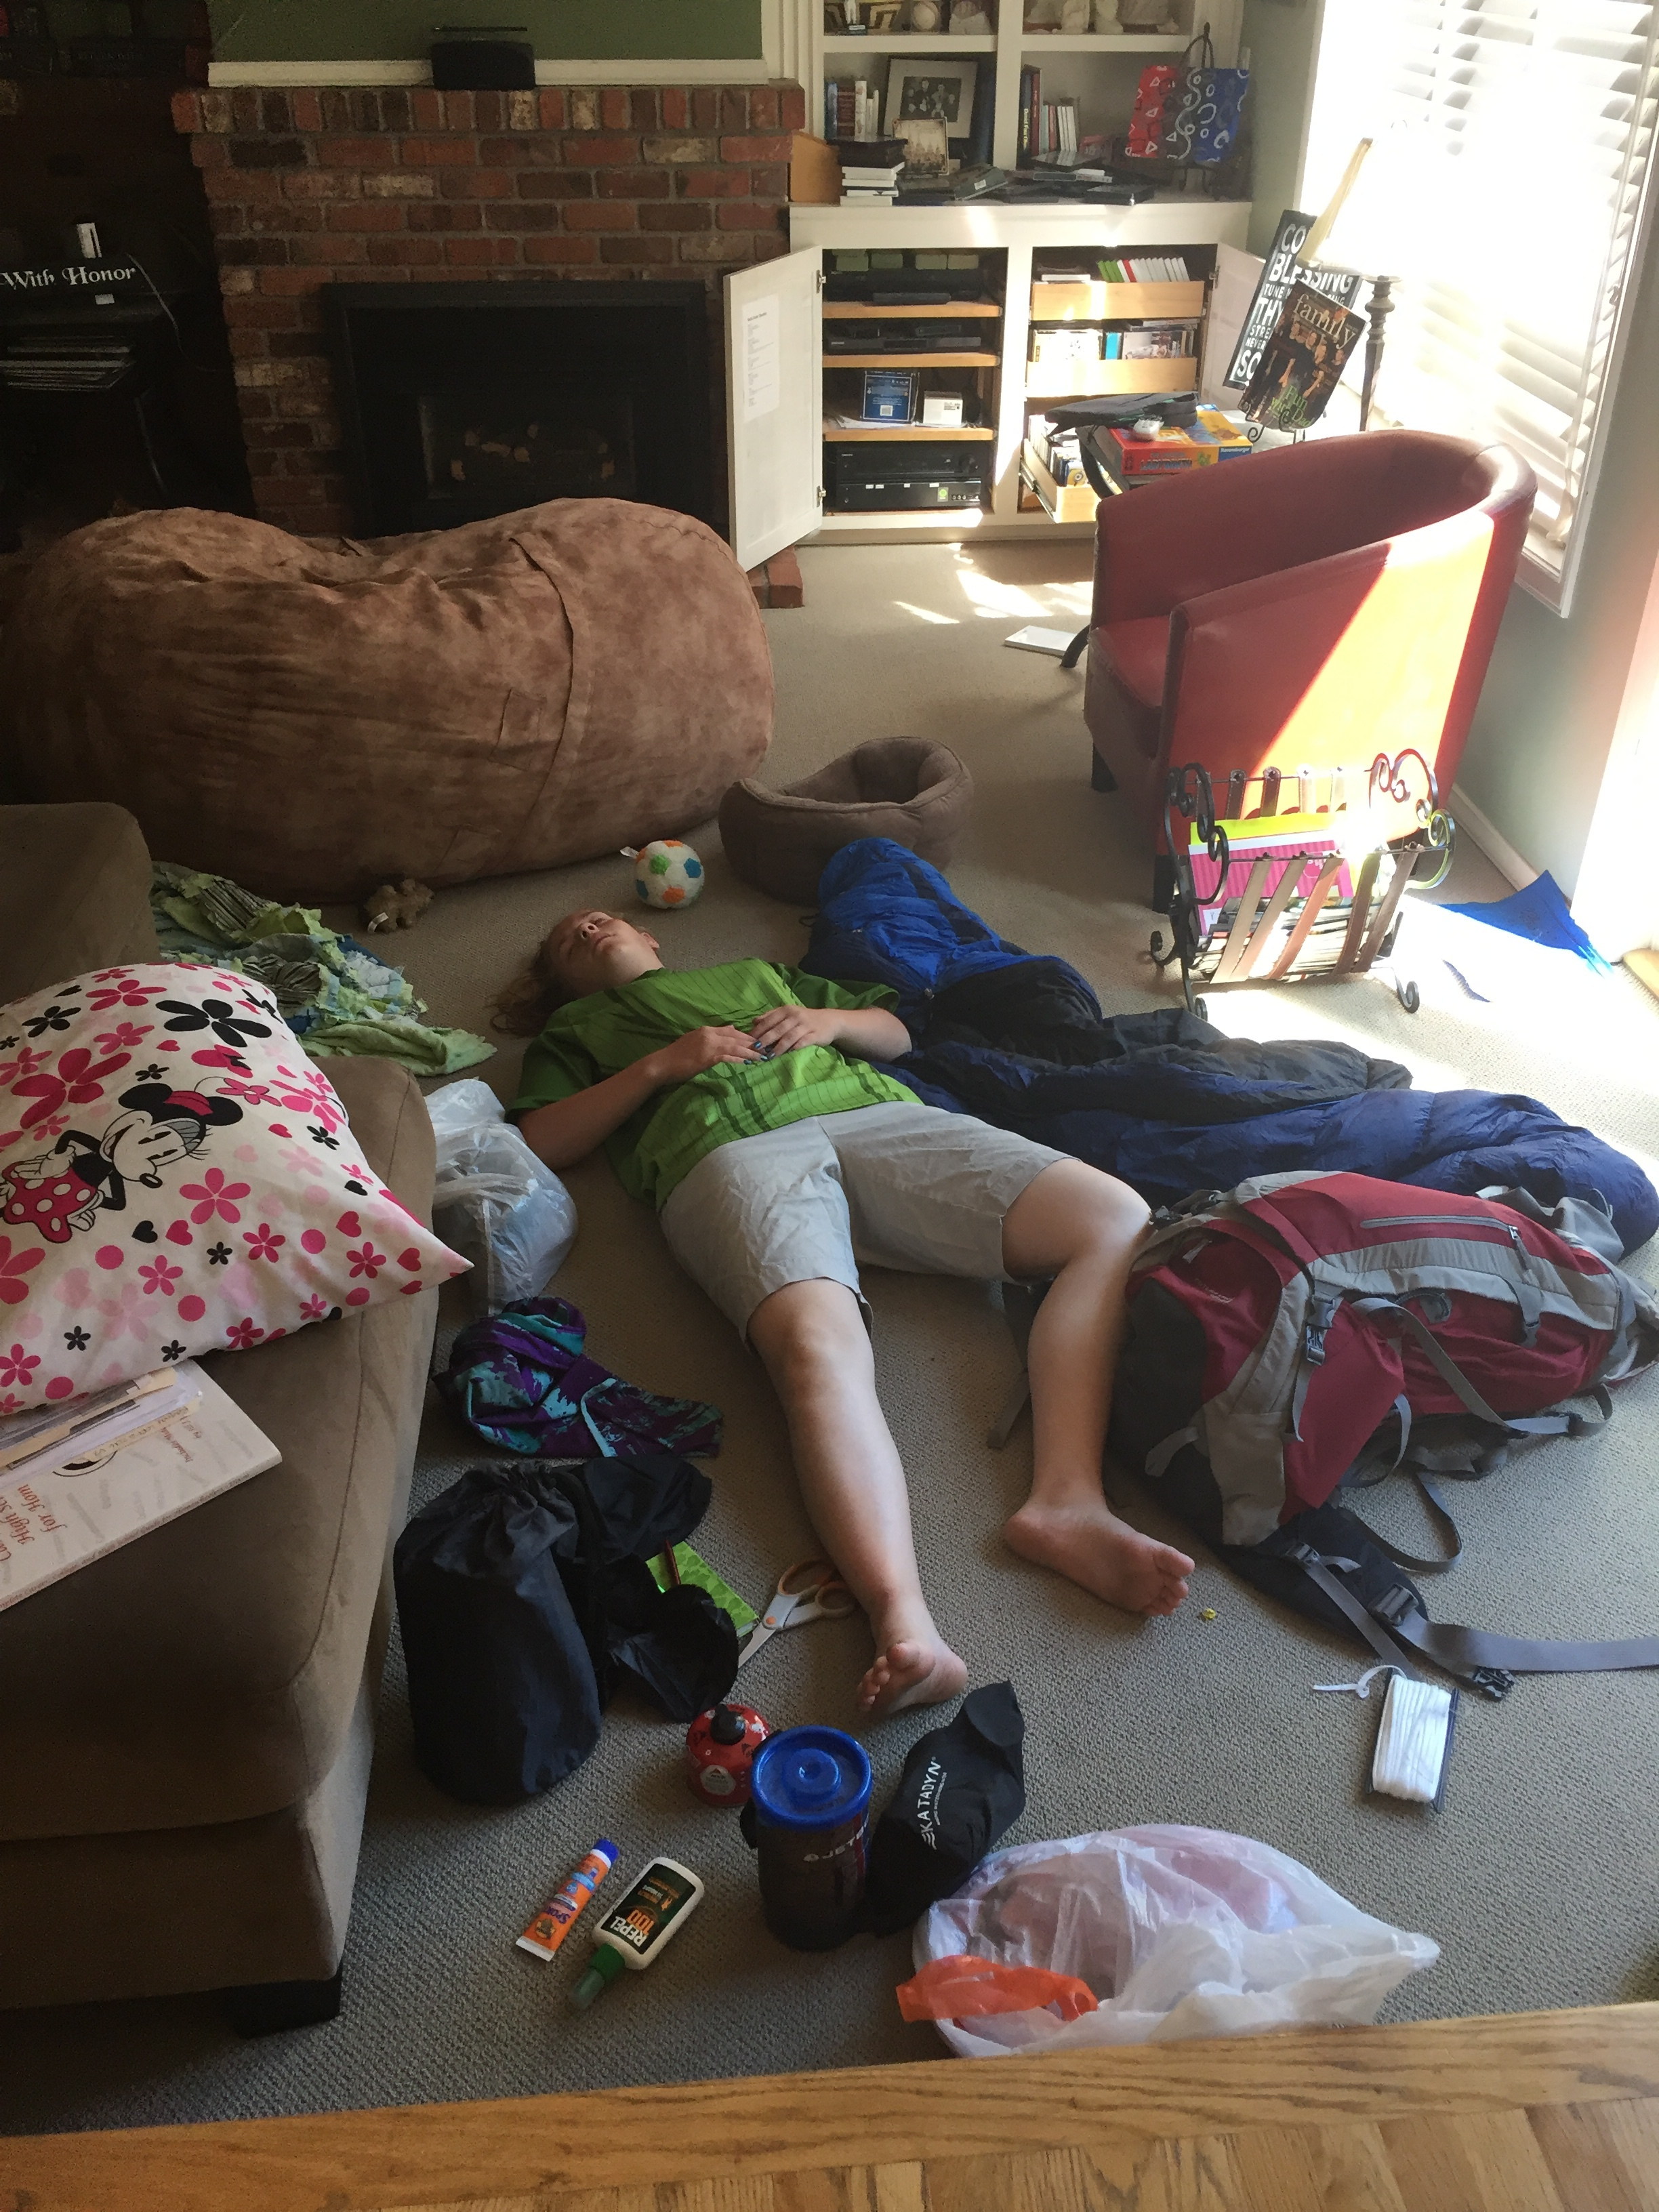 Jessie upon arrival home from girls camp. She didn't even get her bags unpacked before she was out!